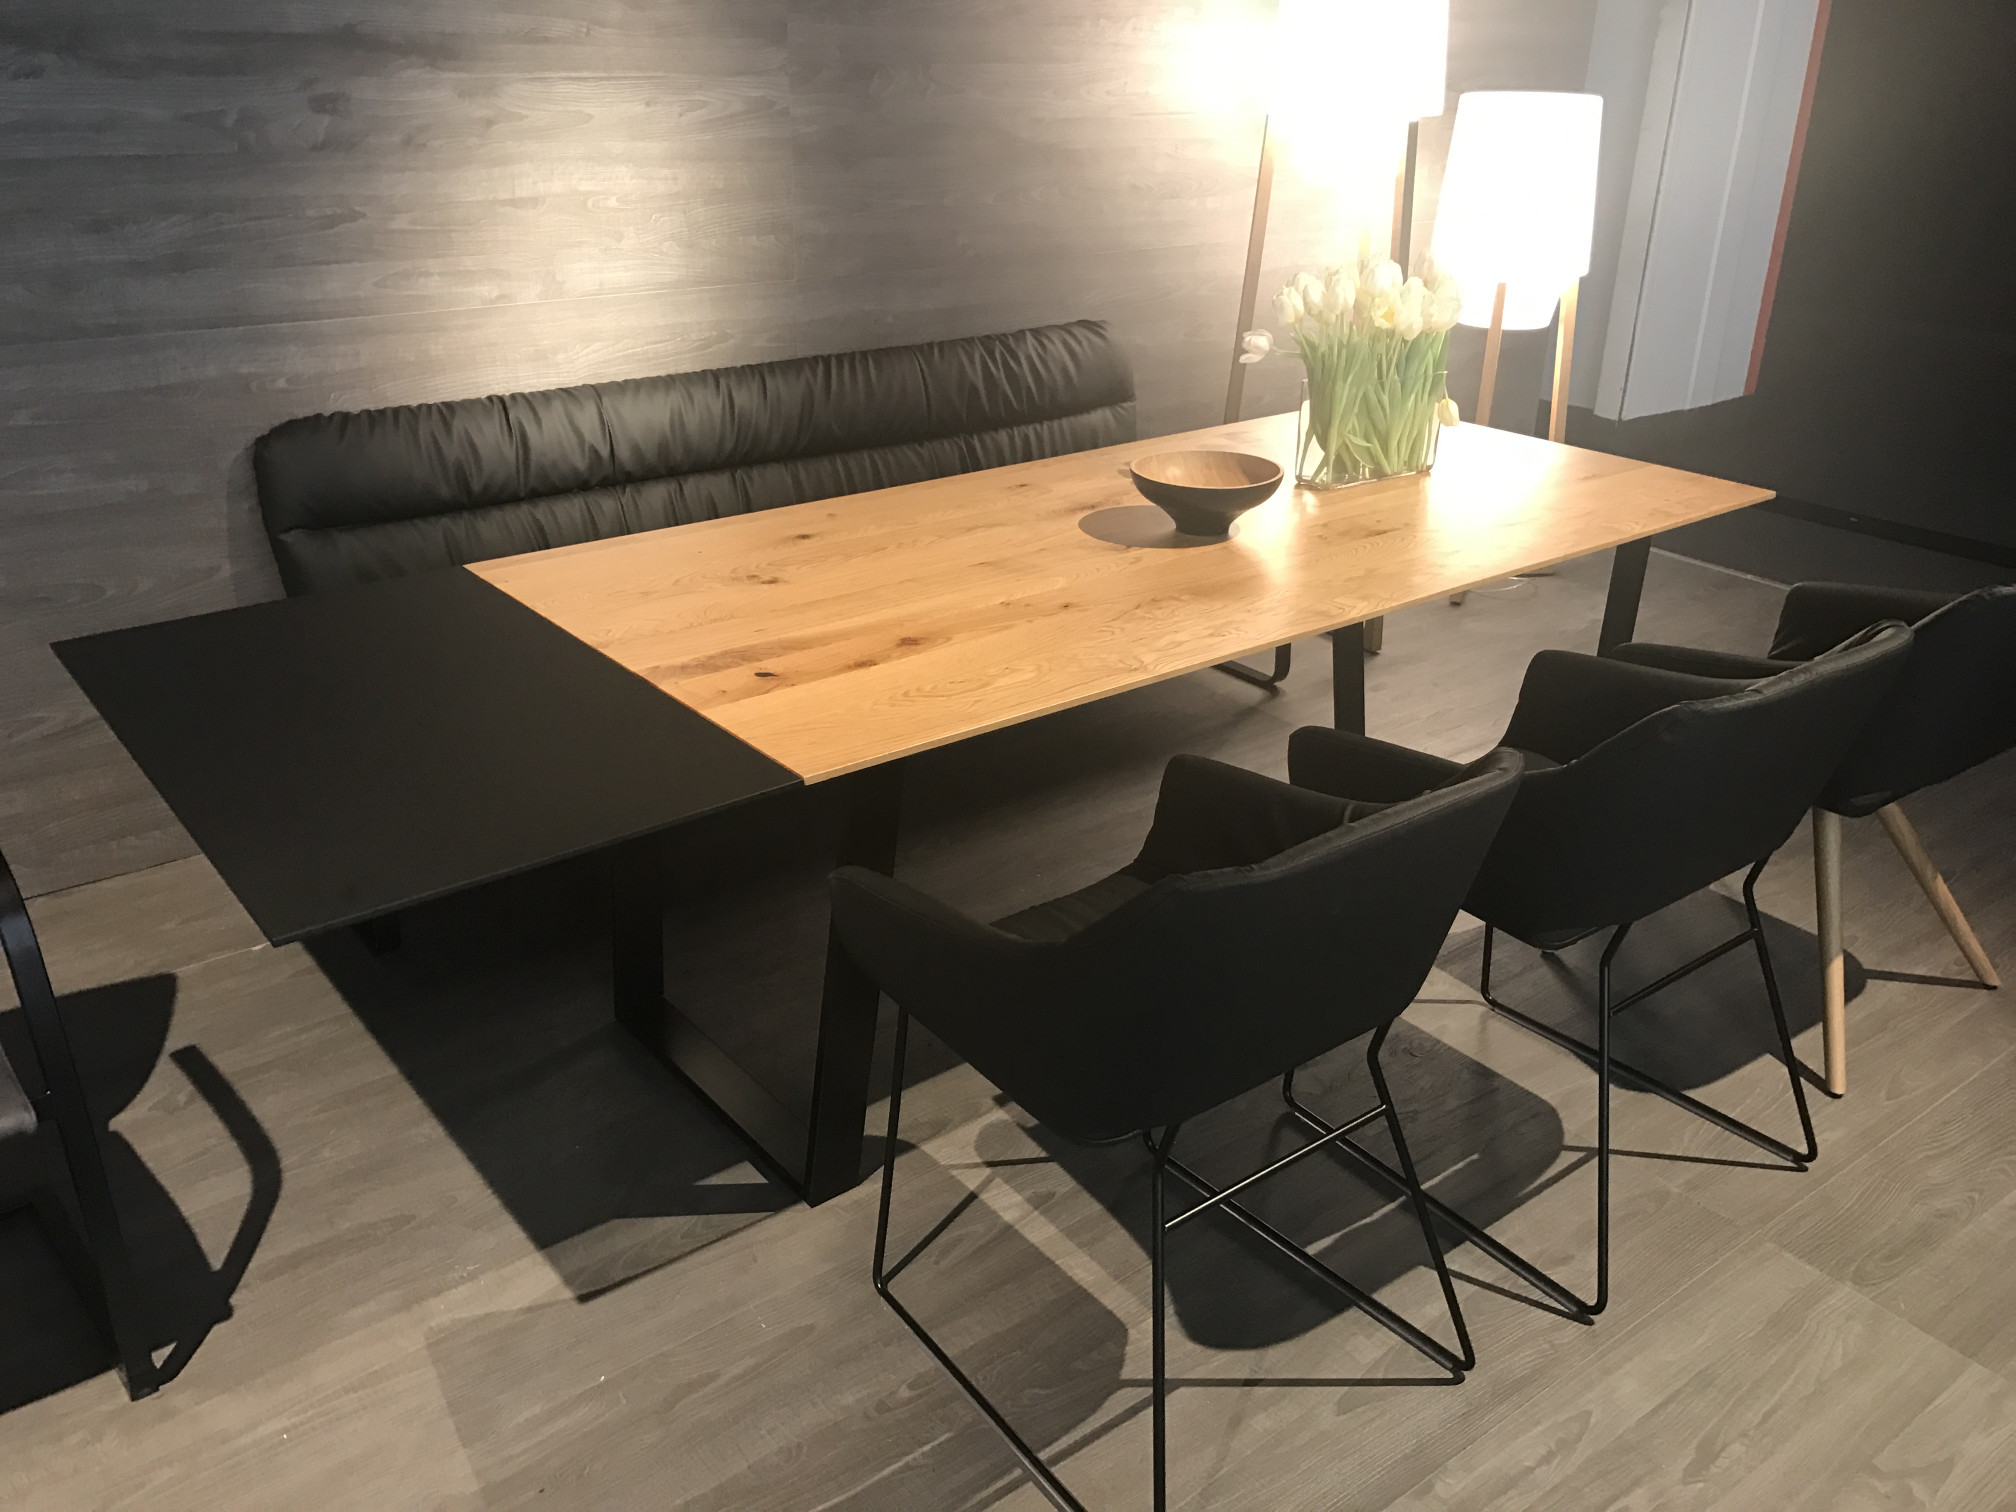 Dining Table with Bench New Versatile Dining Table Configurations with Bench Seating